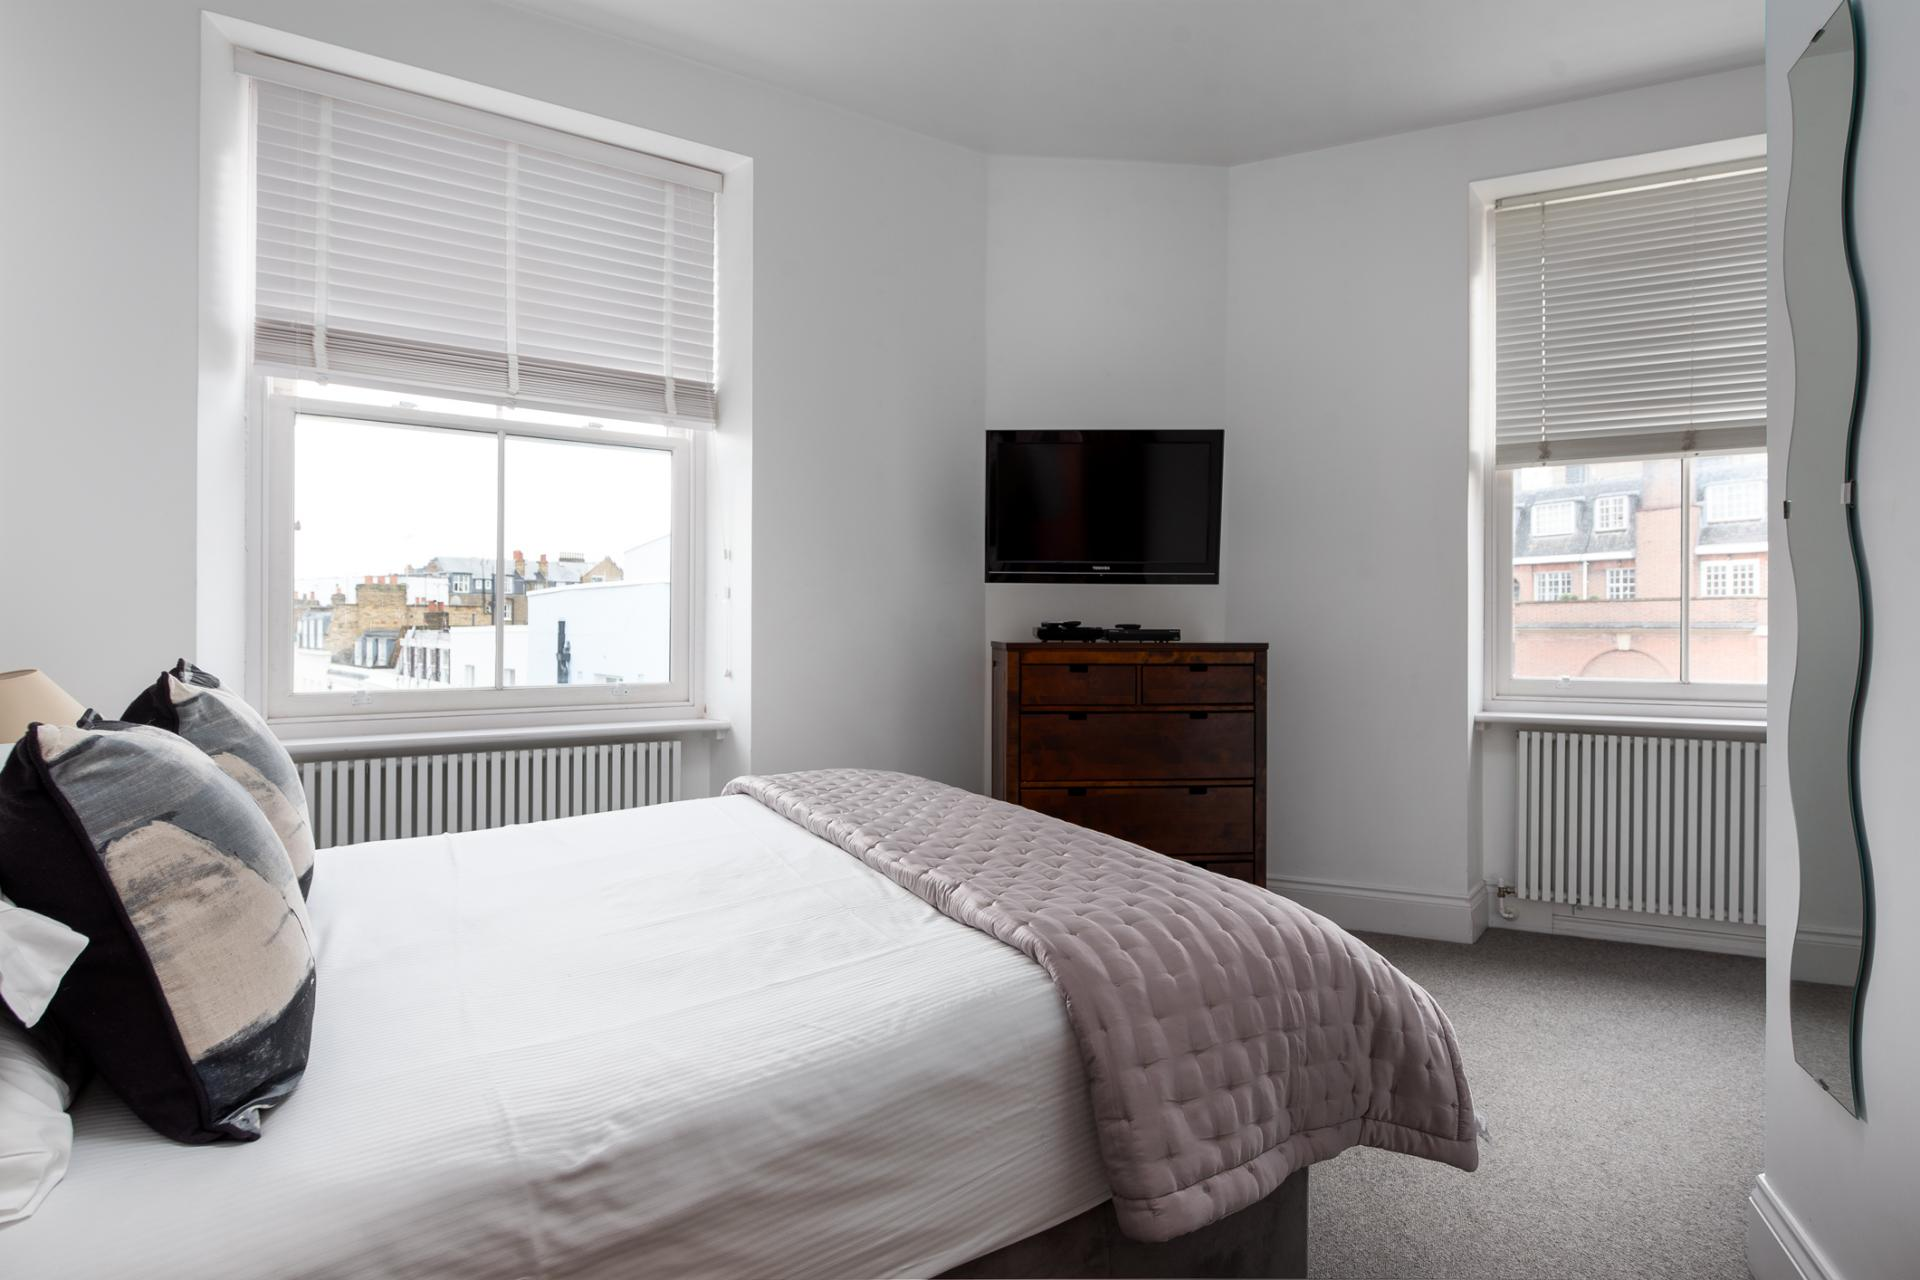 Bed at Chelsea Green Apartments, Chelsea, London